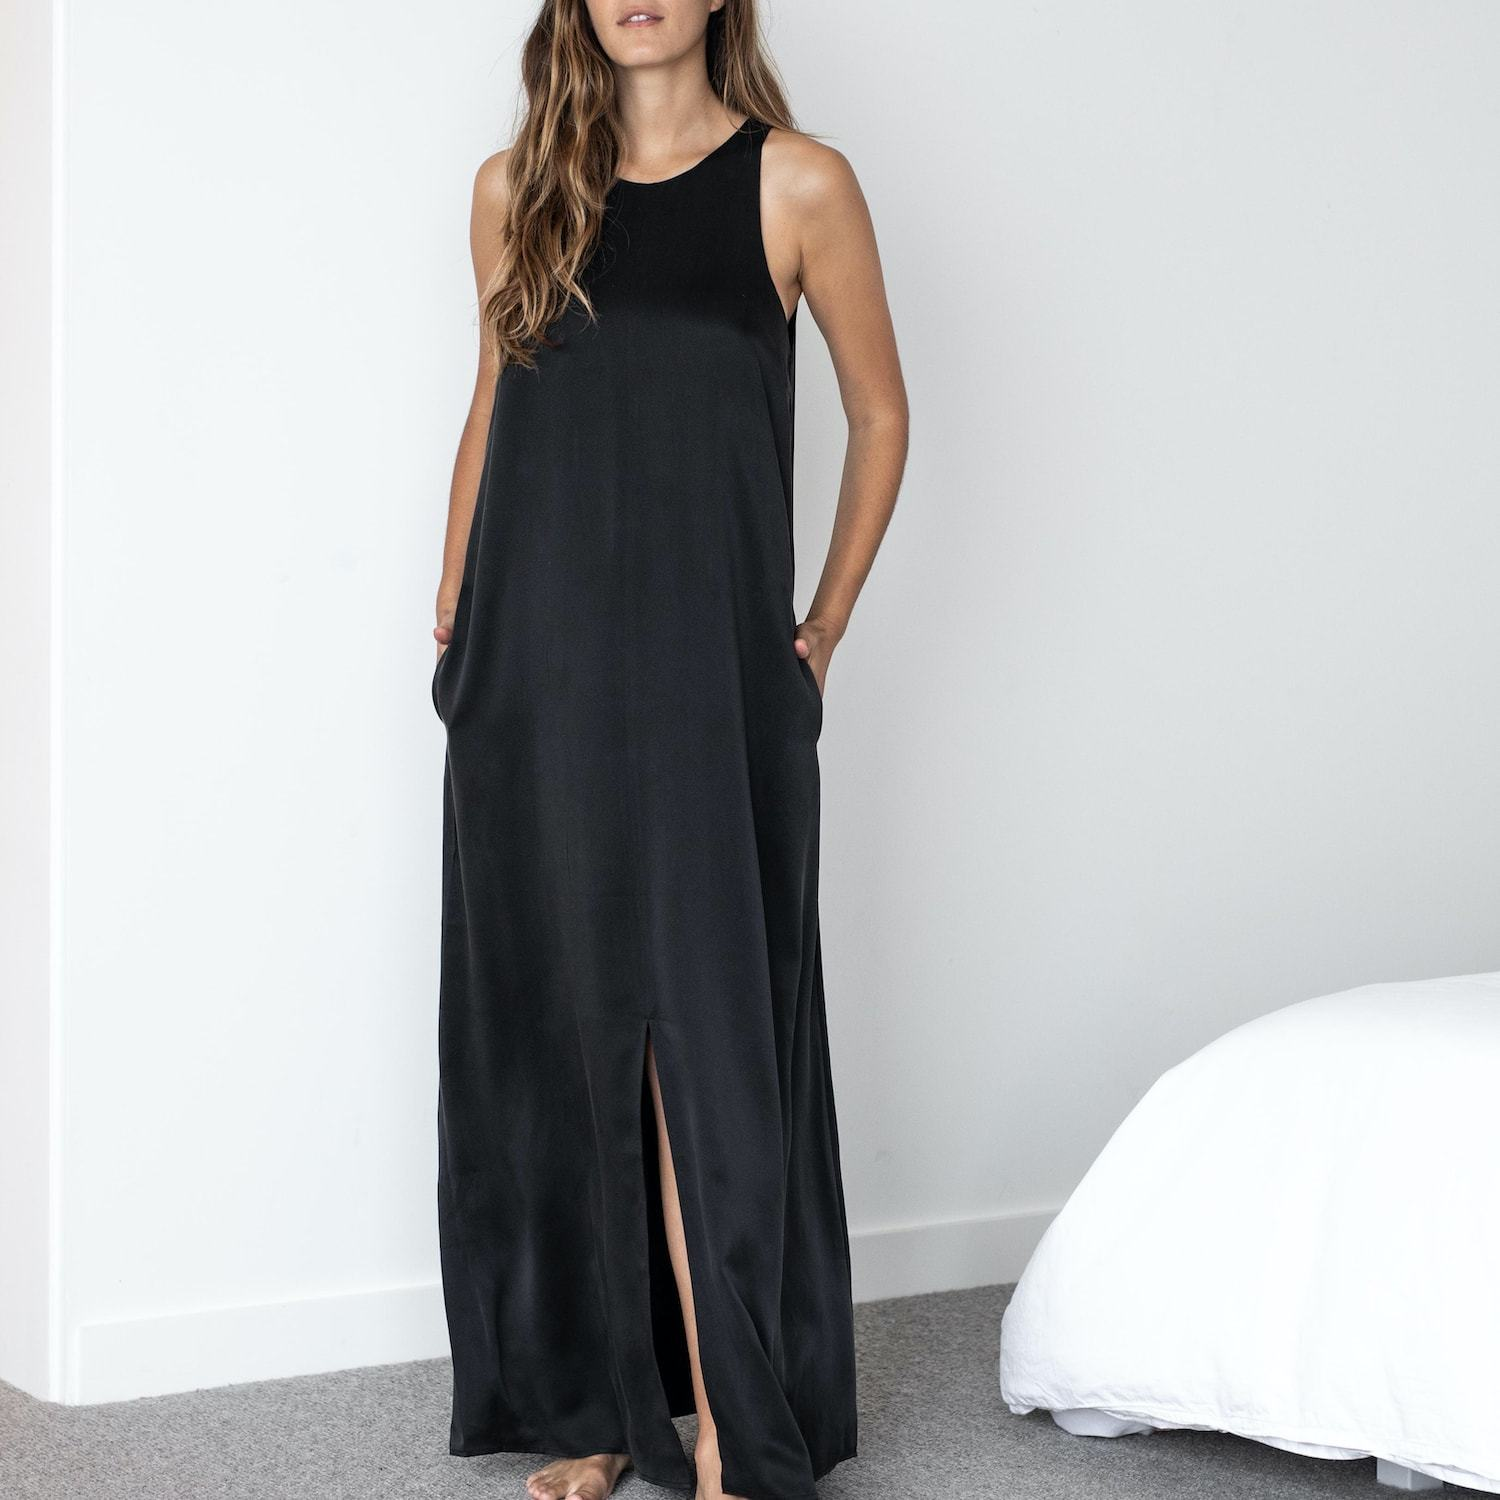 Lunya Sleepwear Washable Silk Racer Dress - #Black